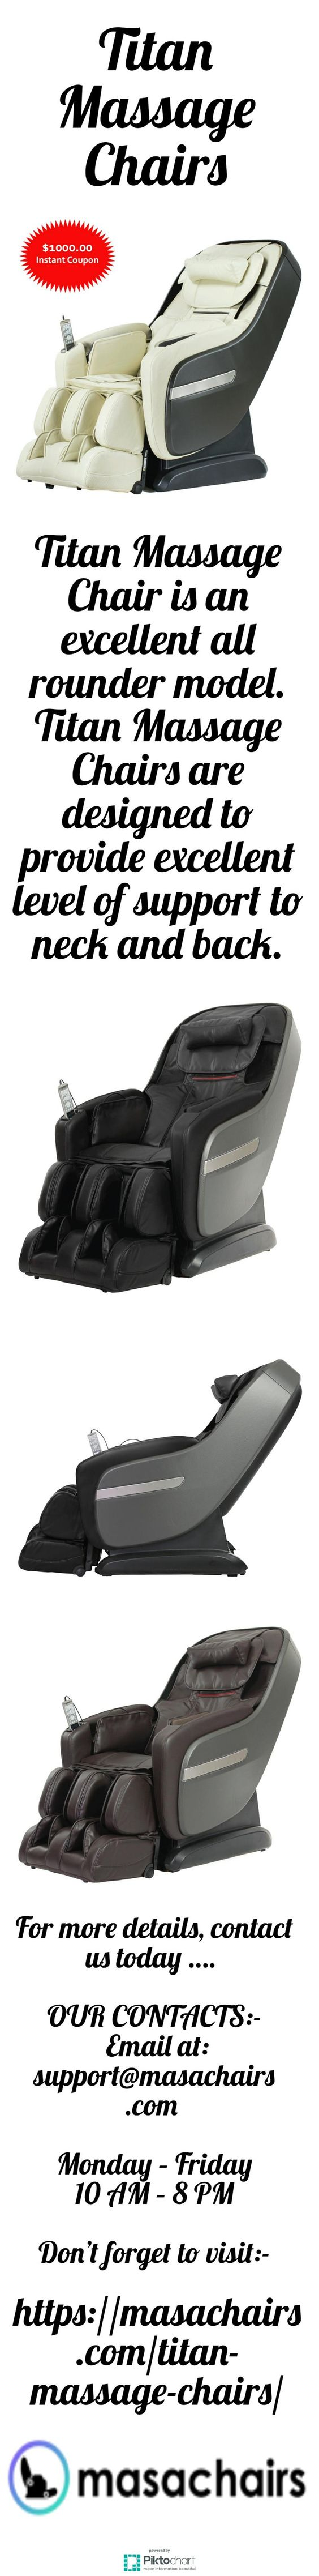 Titan Massage Chair is an excellent all rounder model Titan